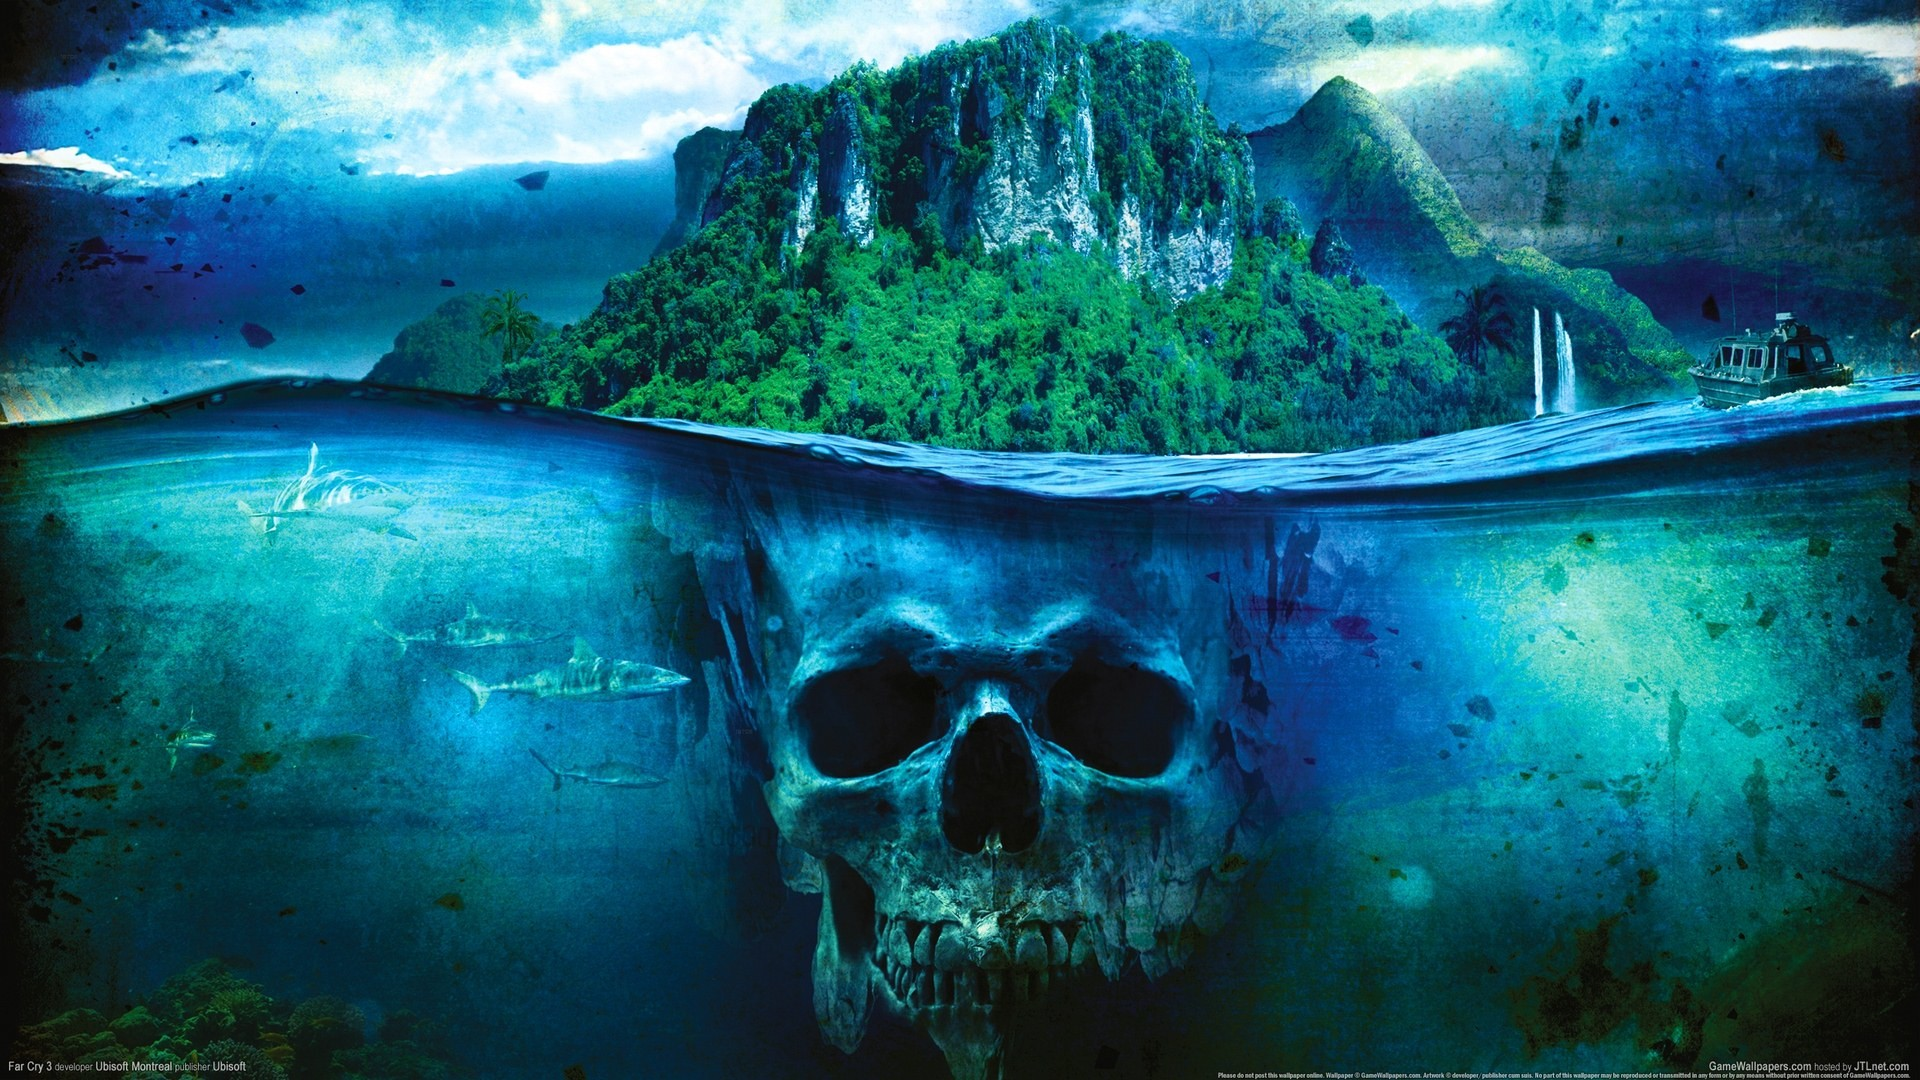 To Download or Set this Free Skull Island Wallpaper as the Desktop  Background Image for your